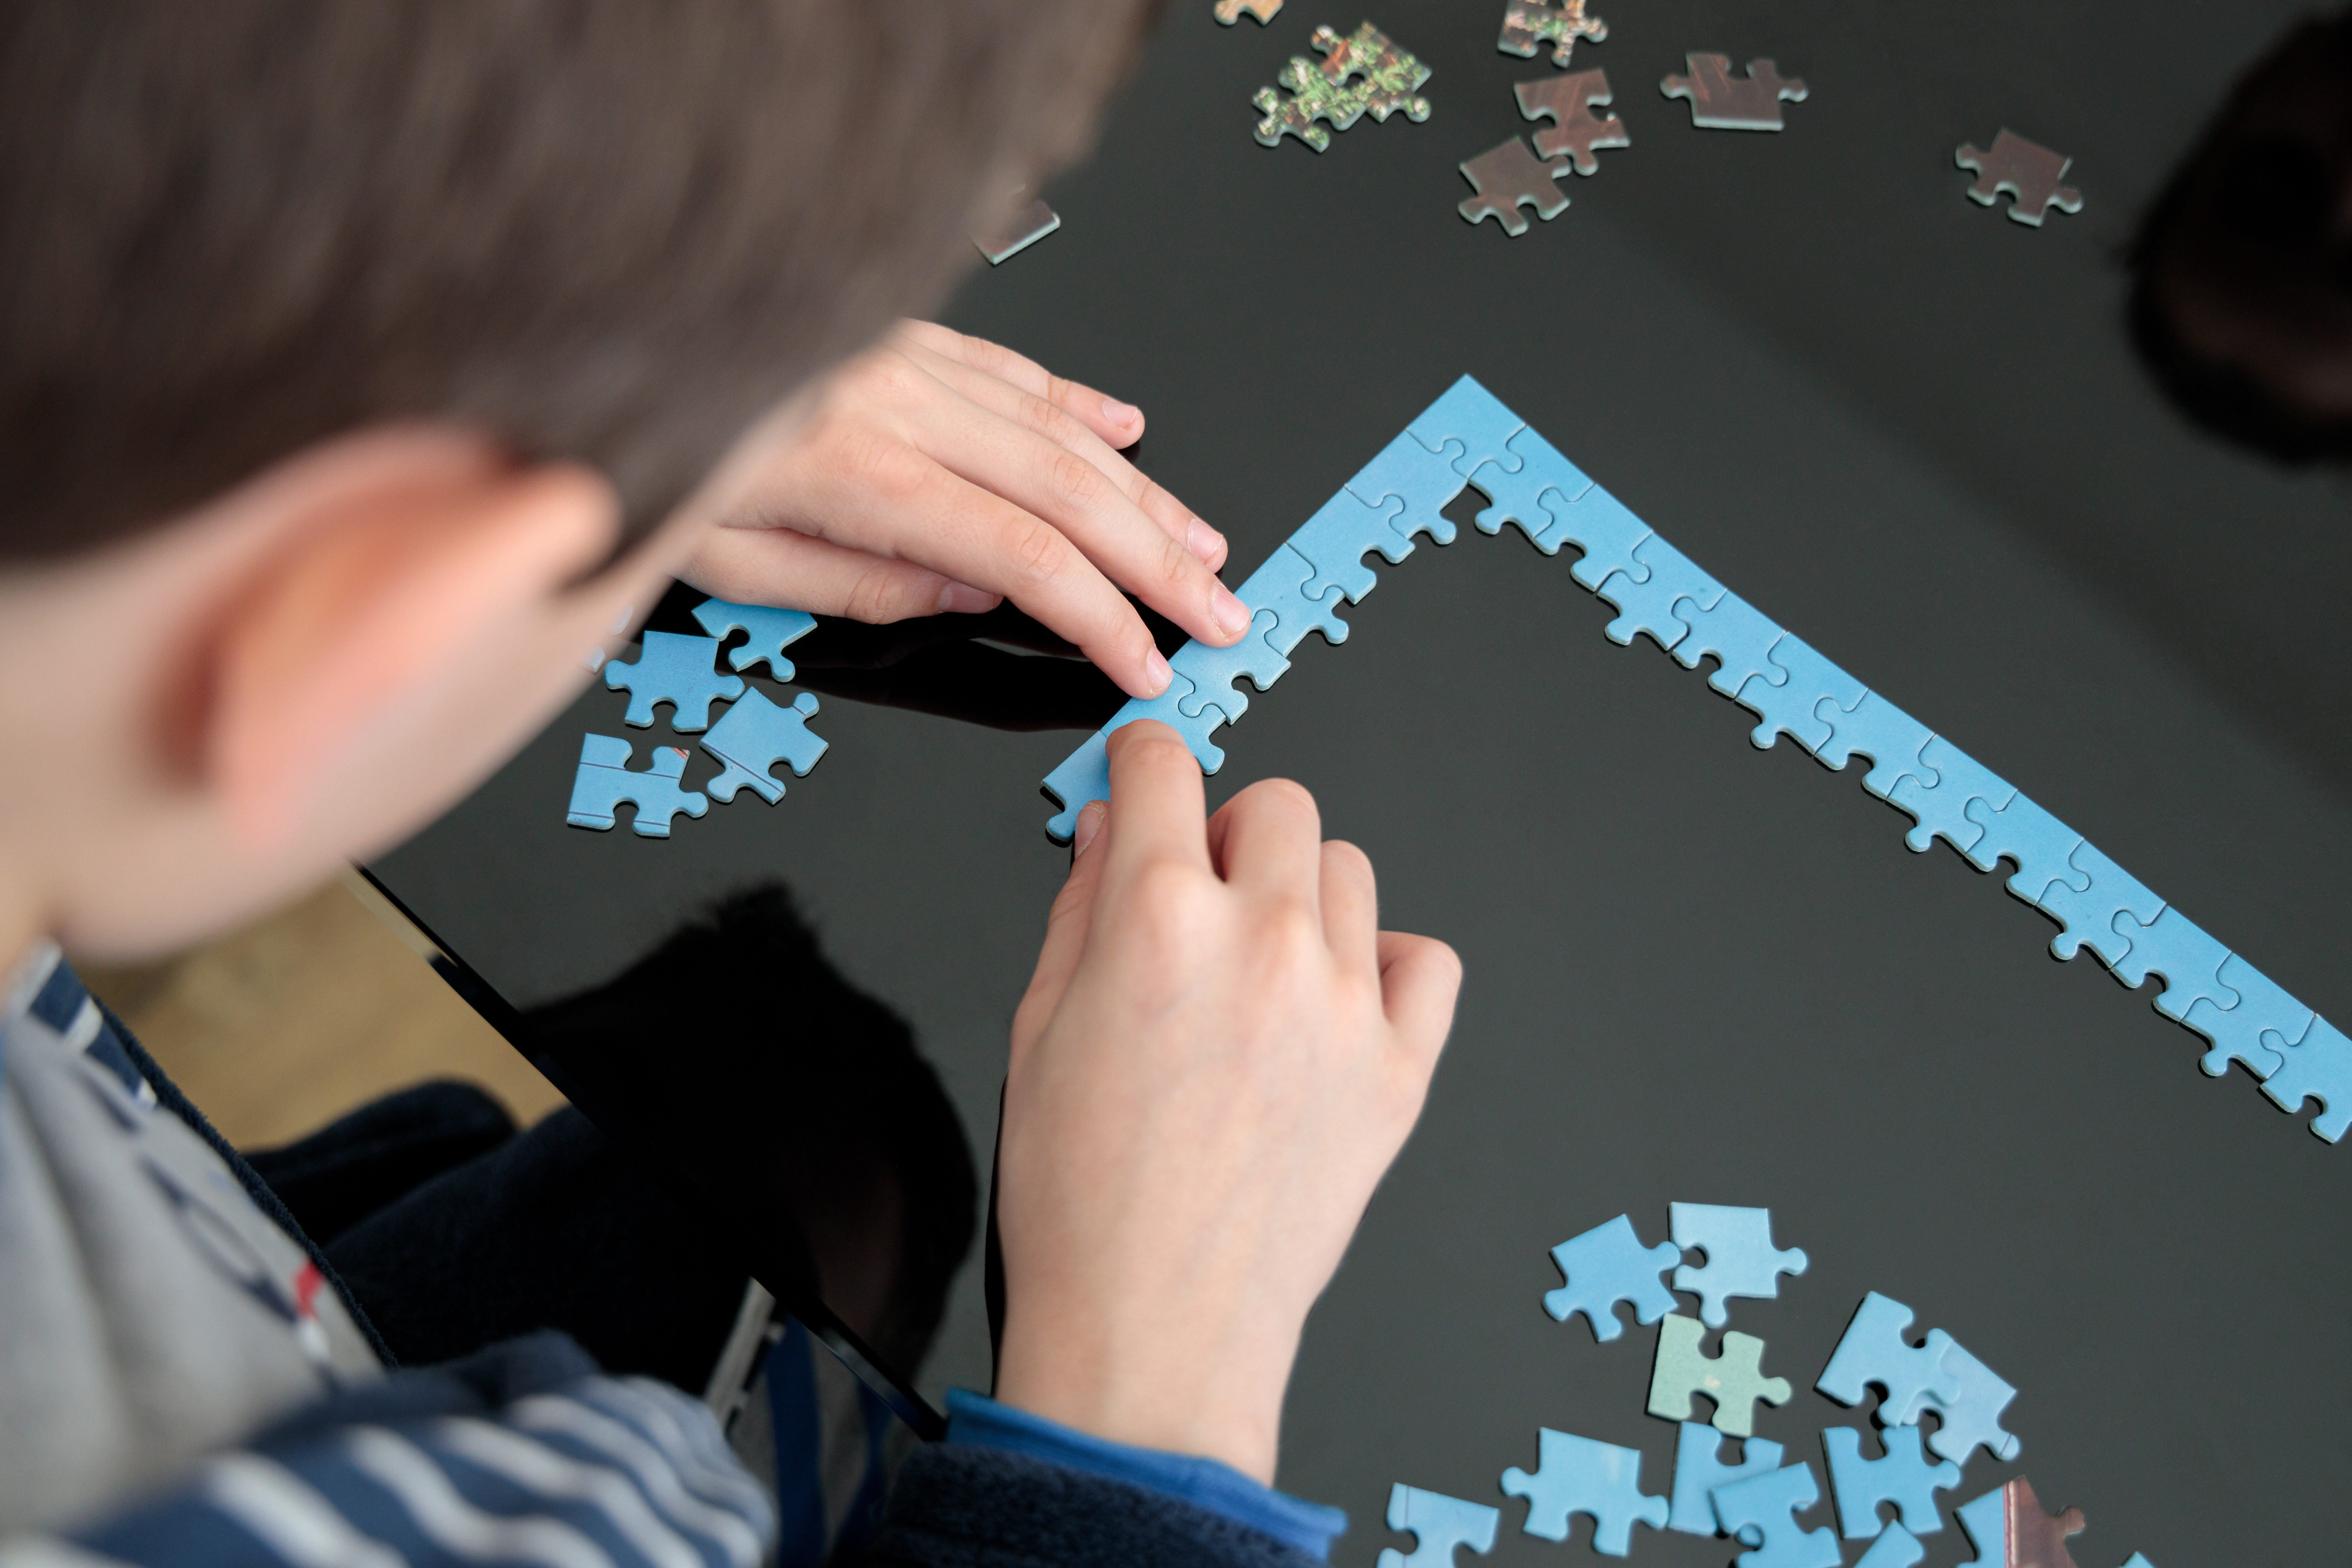 Hands, head and jigsaw puzzle pieces on a table